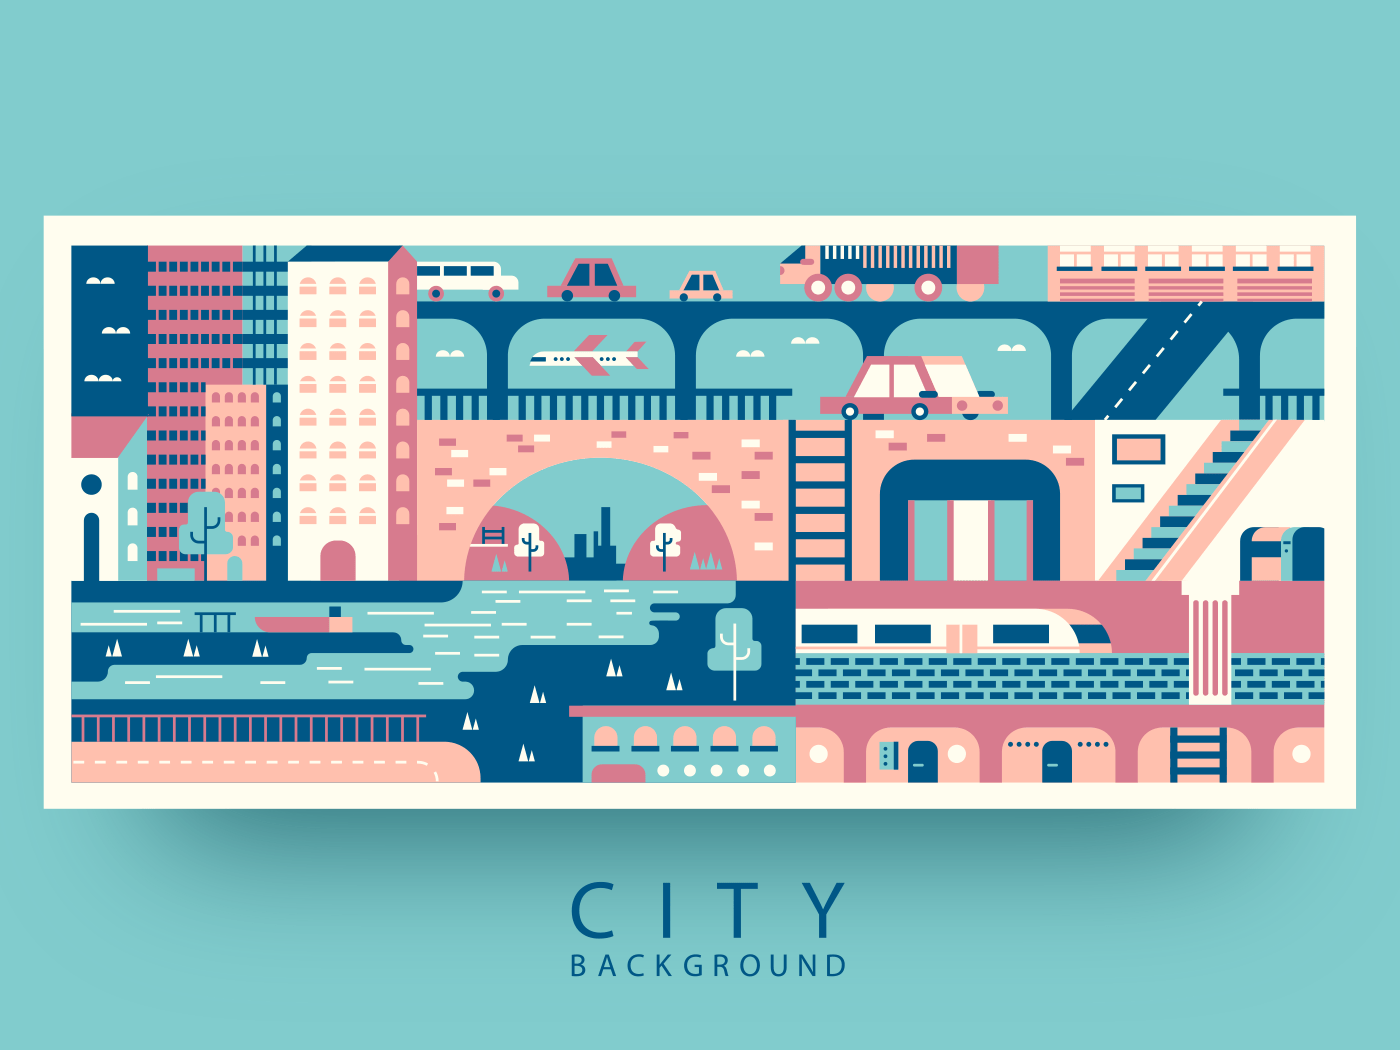 City abstract background flat vector illustration